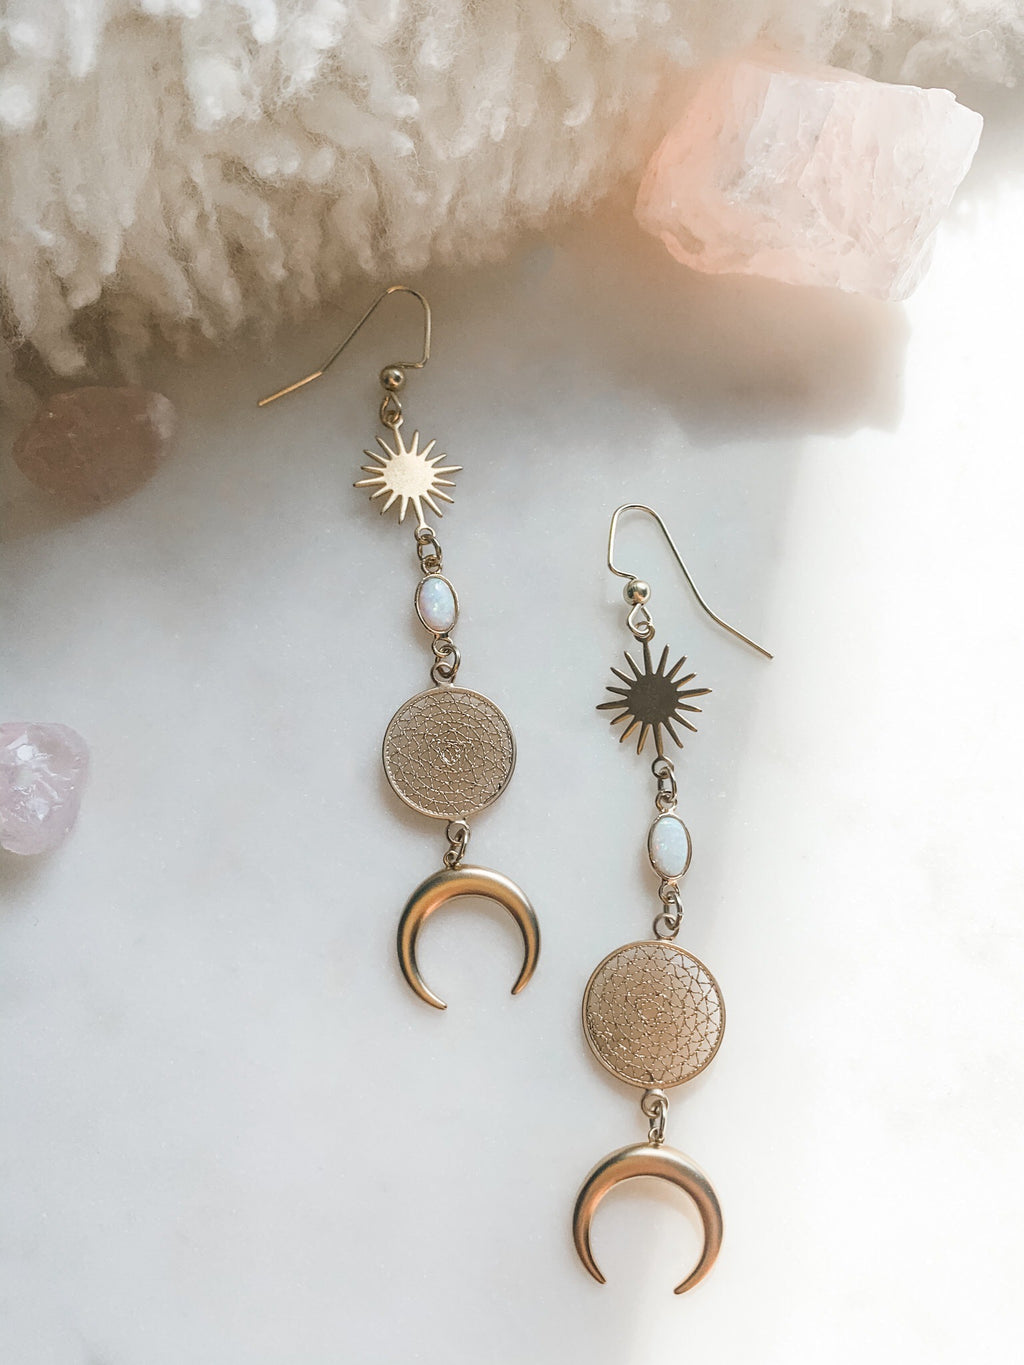 Moondream - Opal Drop Earrings - The Pretty Eclectic